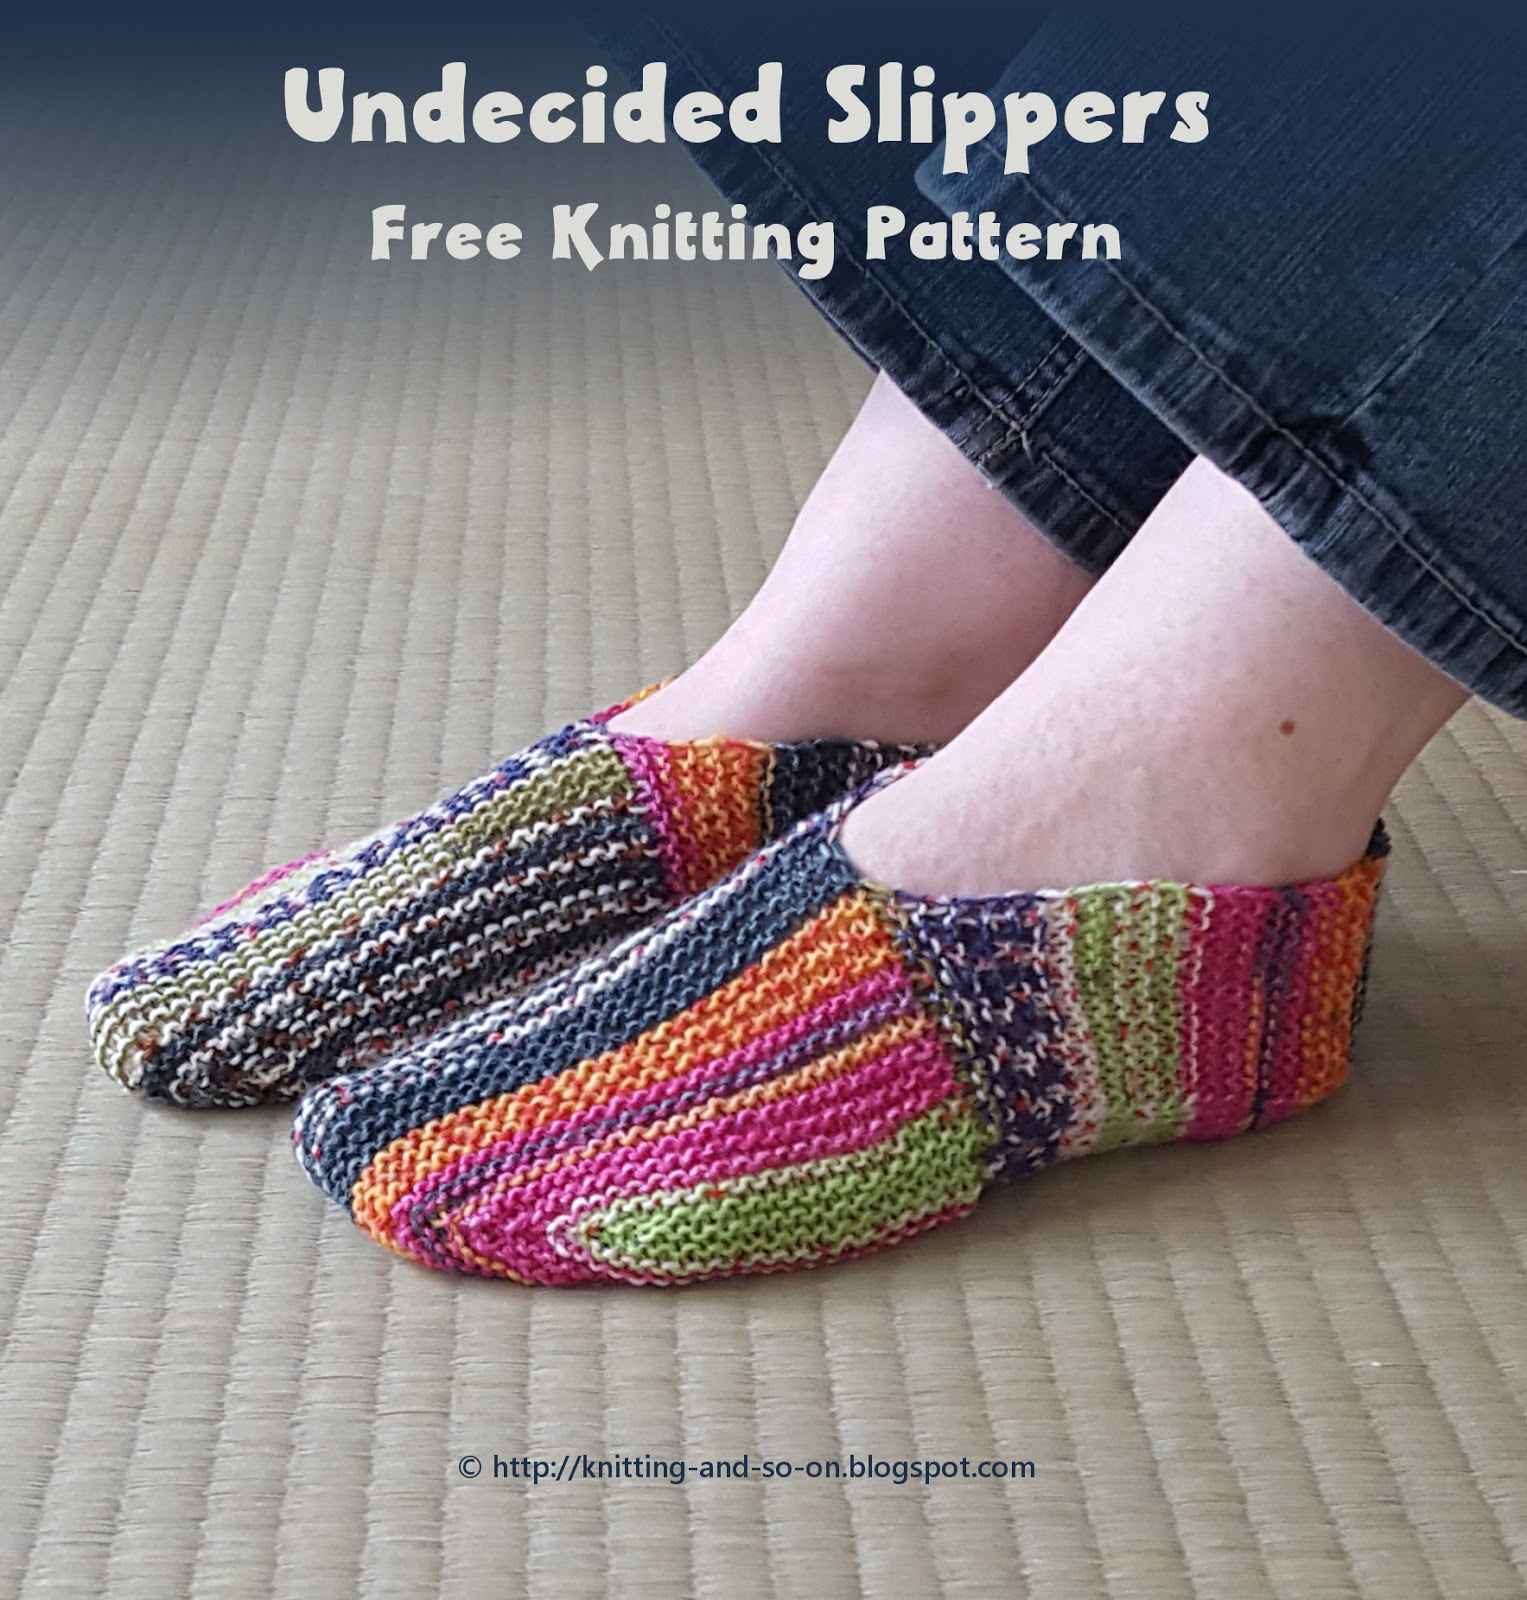 Free Patterns For Knitted Slippers Knitting And So On Undecided Slippers